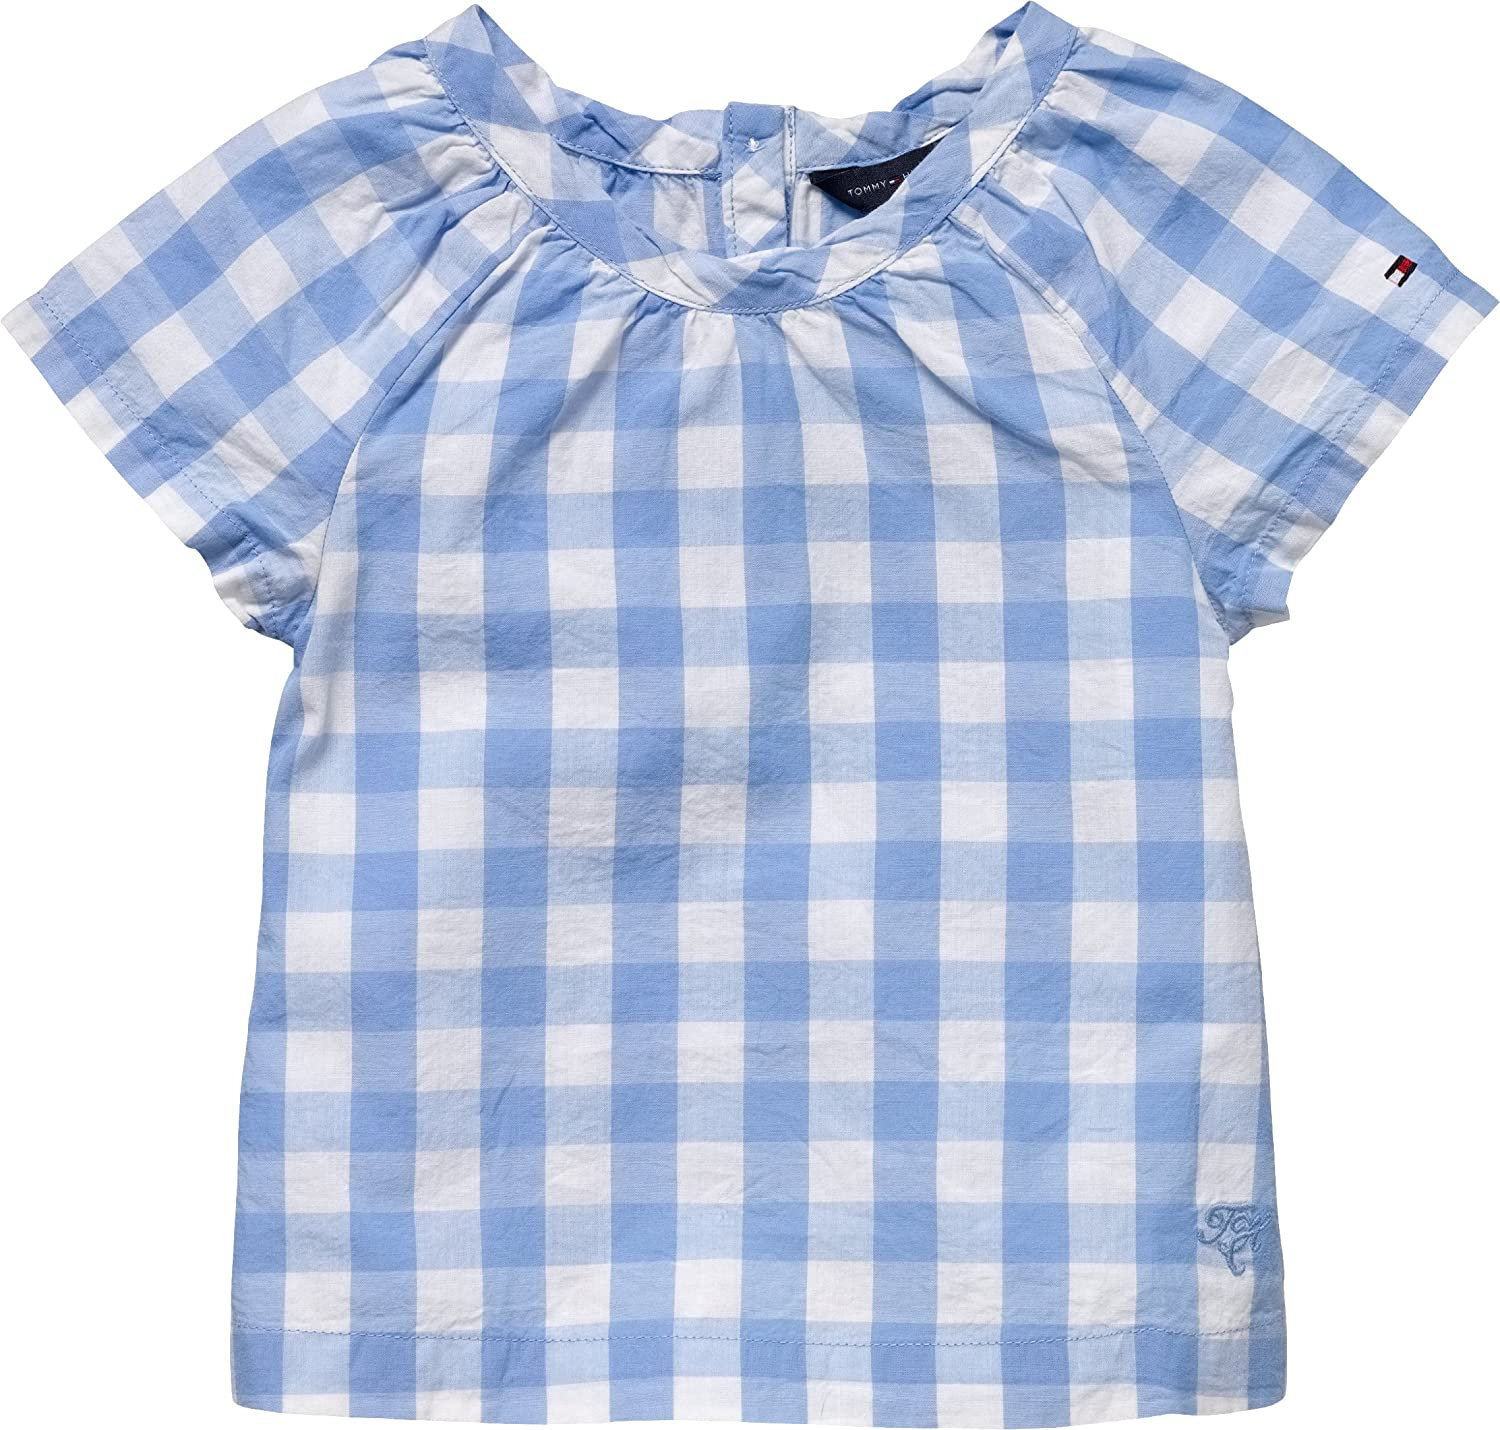 59a9e76076db6 s cHARLY mINI s chemisieragrave  gINGHAM chemisier hilfiger fille pour  carreaux gJ57104914 Tommy 8nwkNXO0P